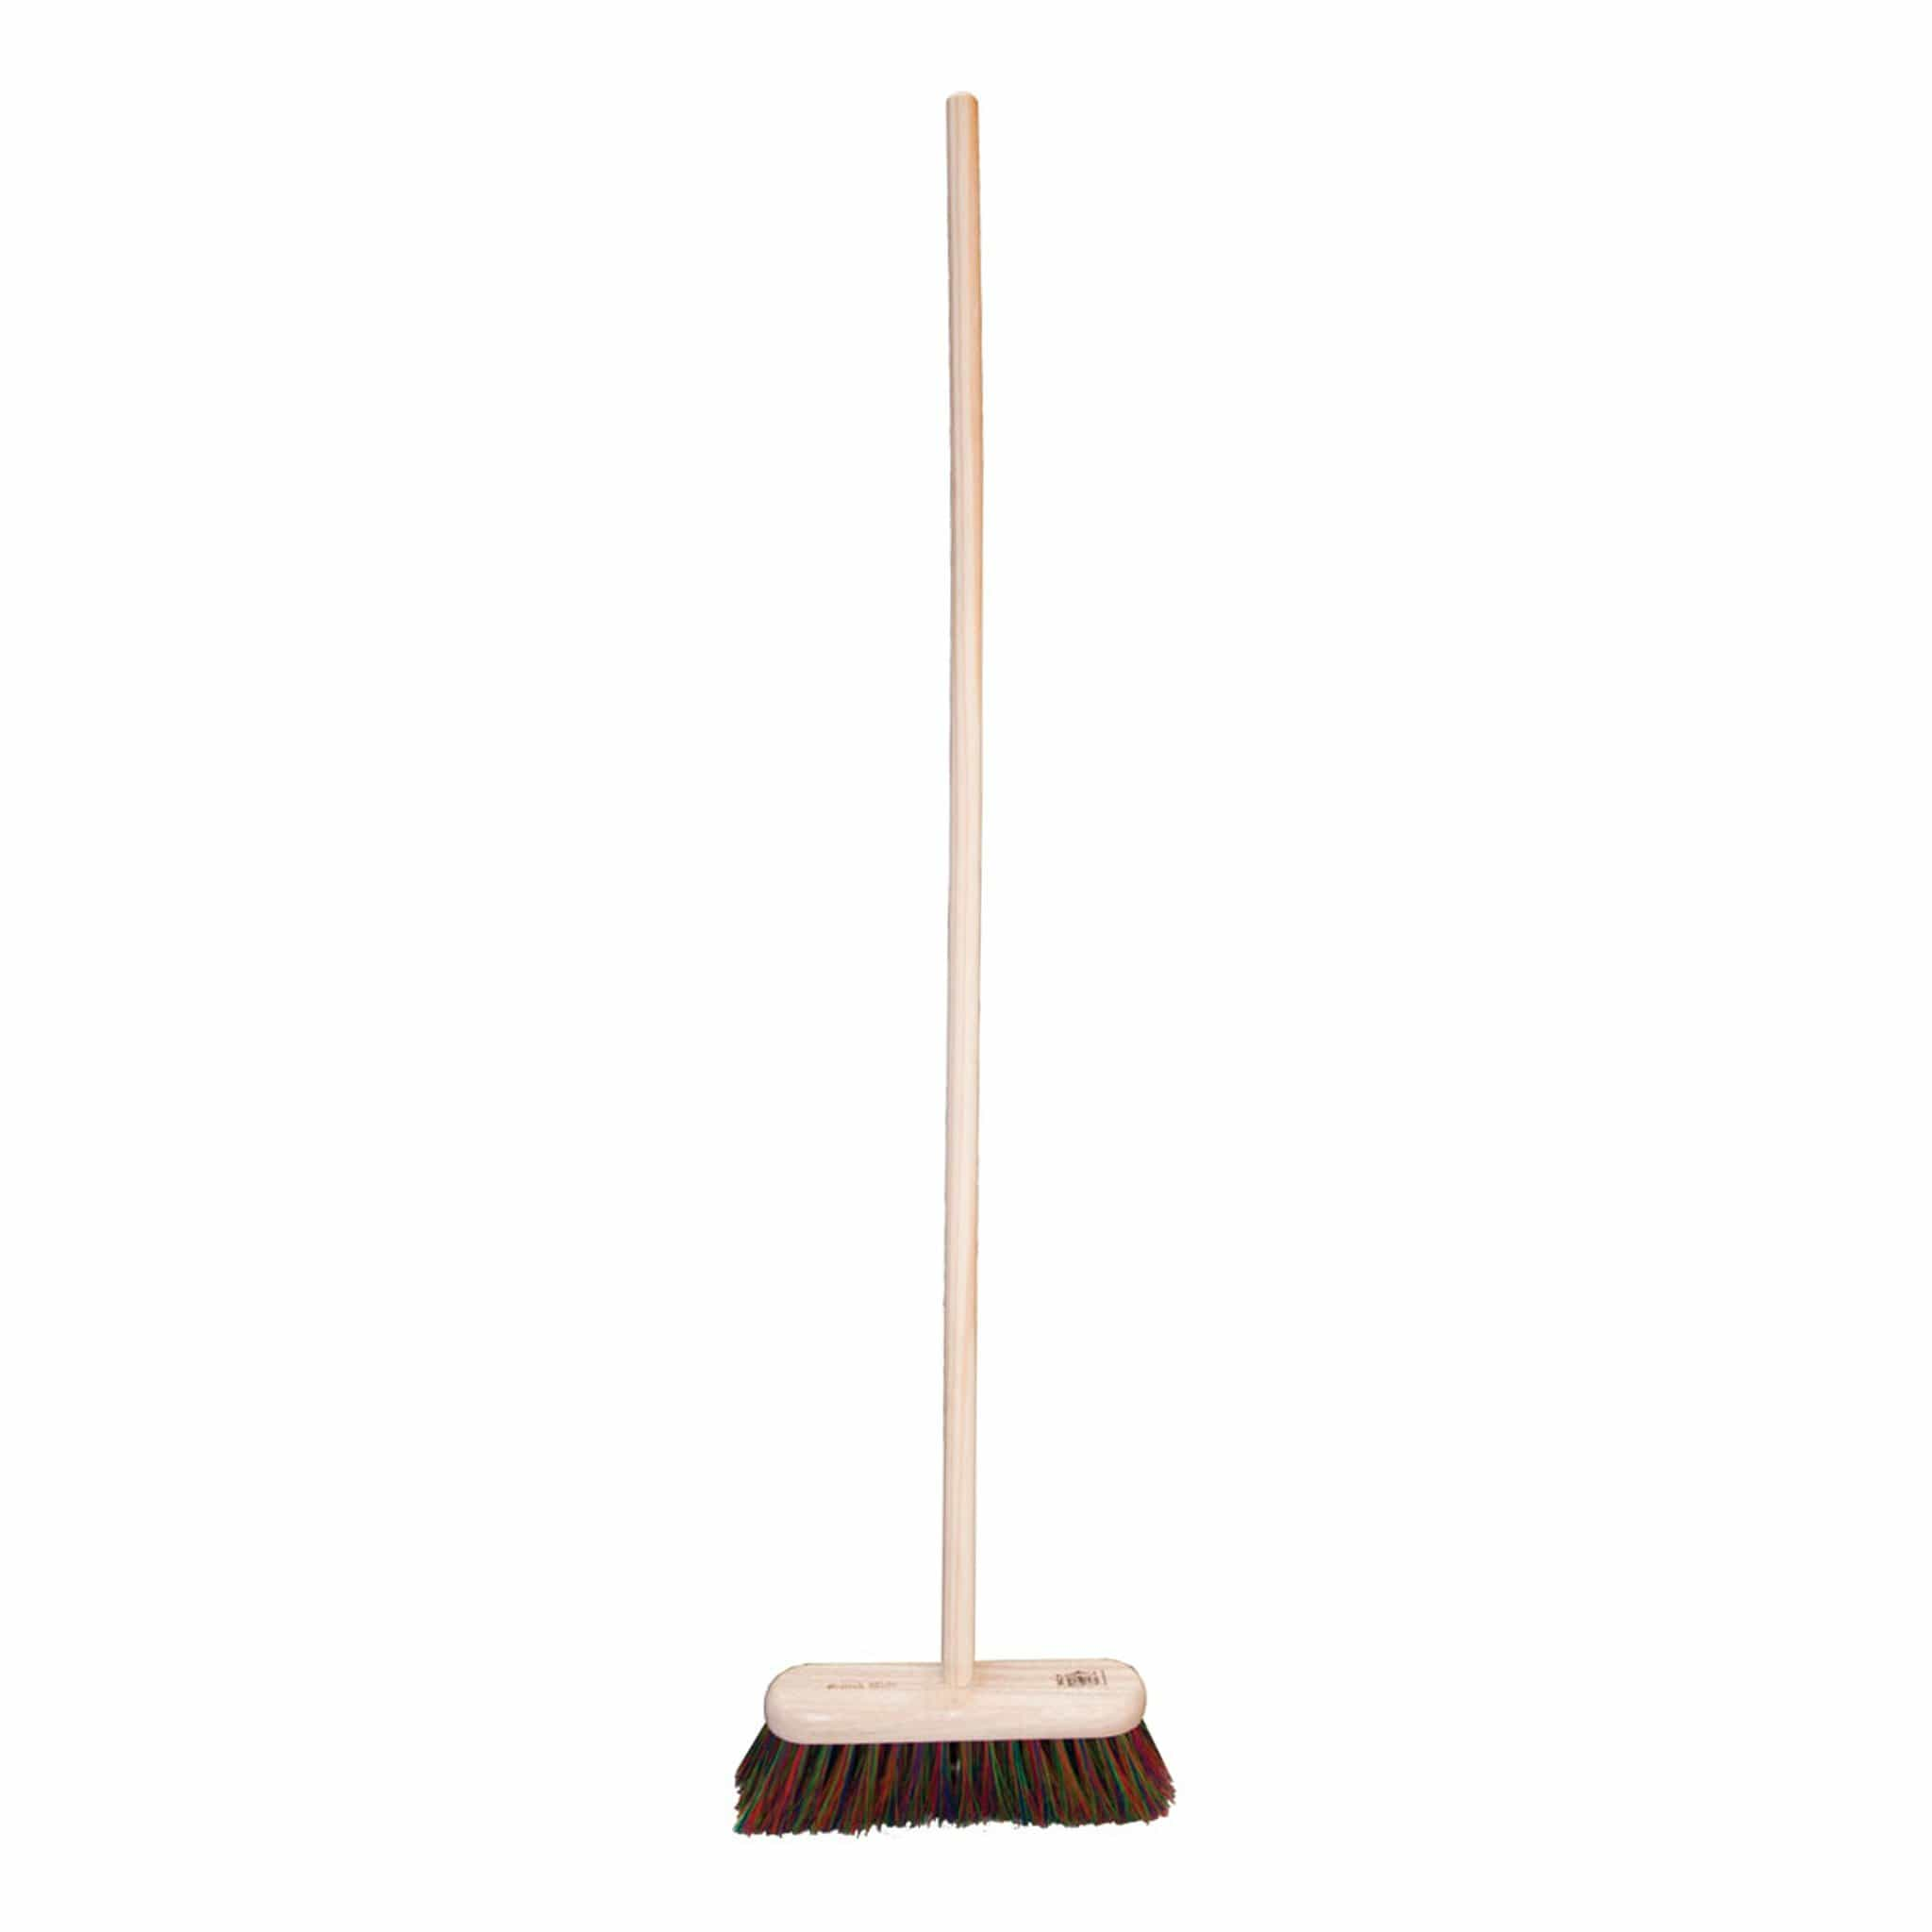 Hillbrush Lightweight Yard Broom